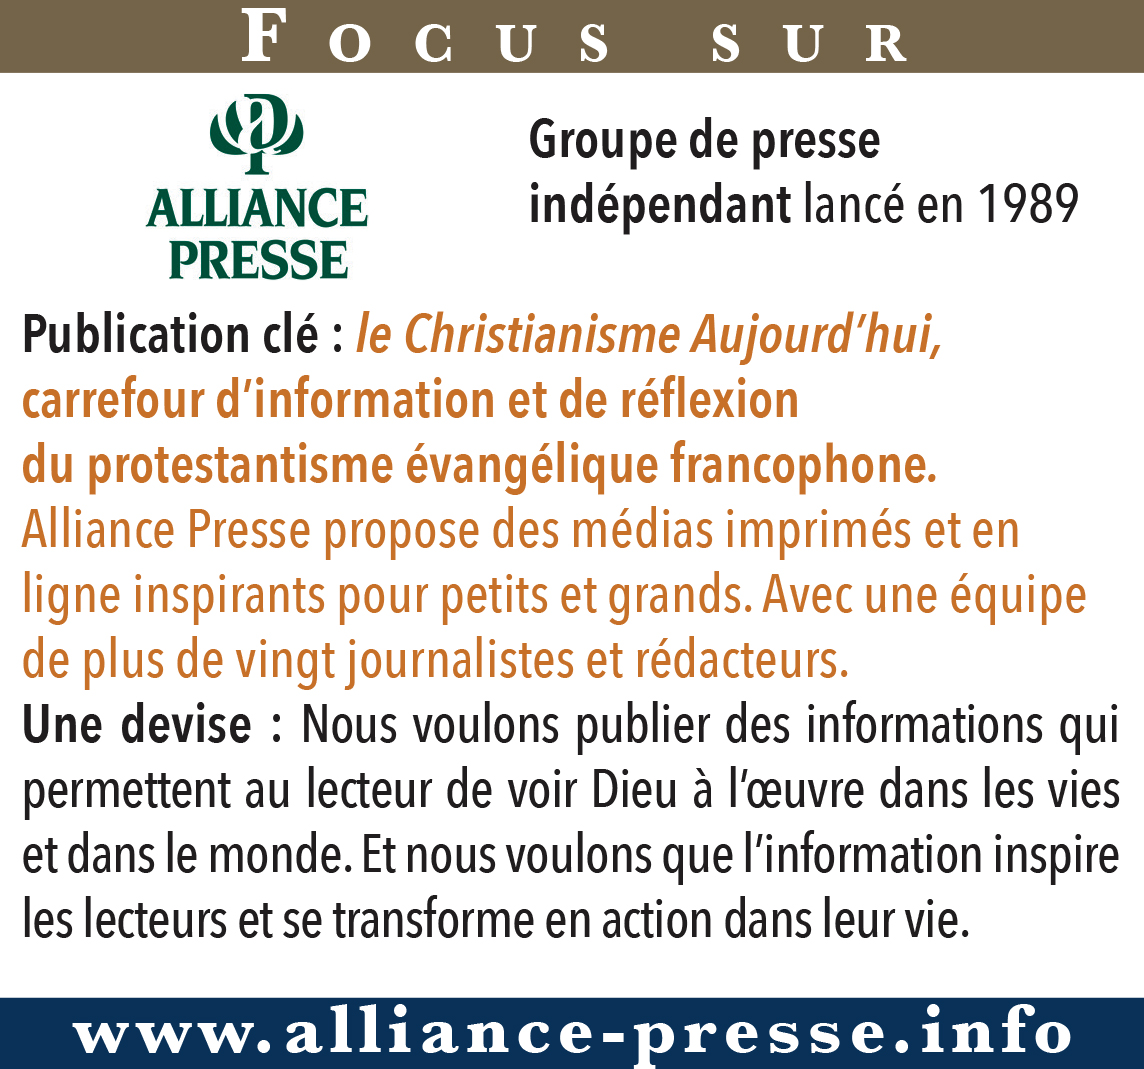 Focus sur Alliance Presse